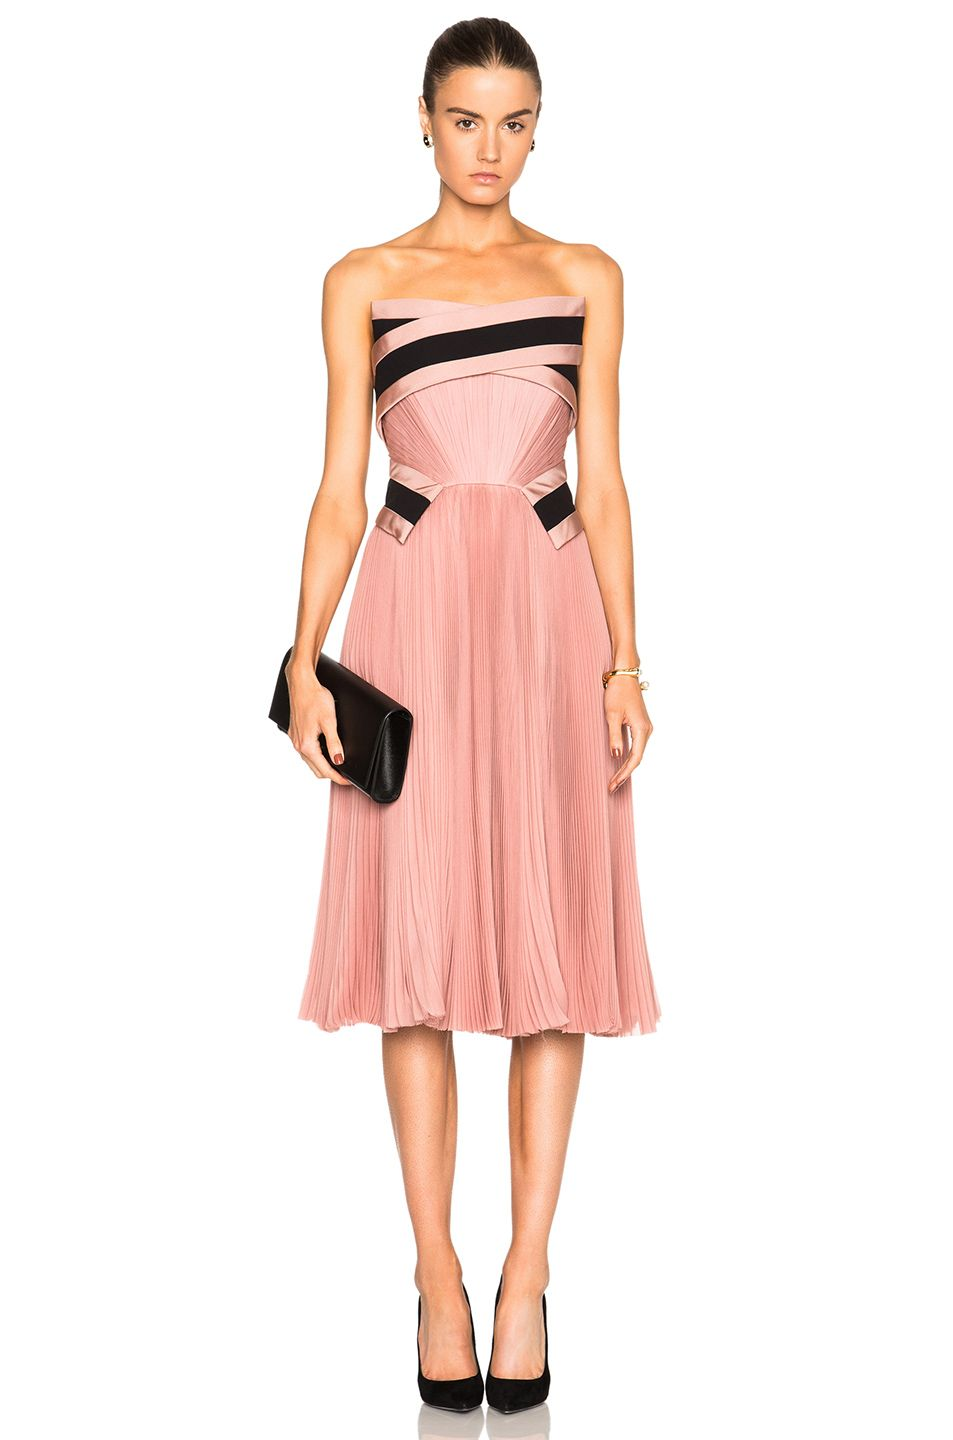 J. Mendel Pleated Dress in Sugar Pink | FWRD | Pretty Shades Of Pink ...